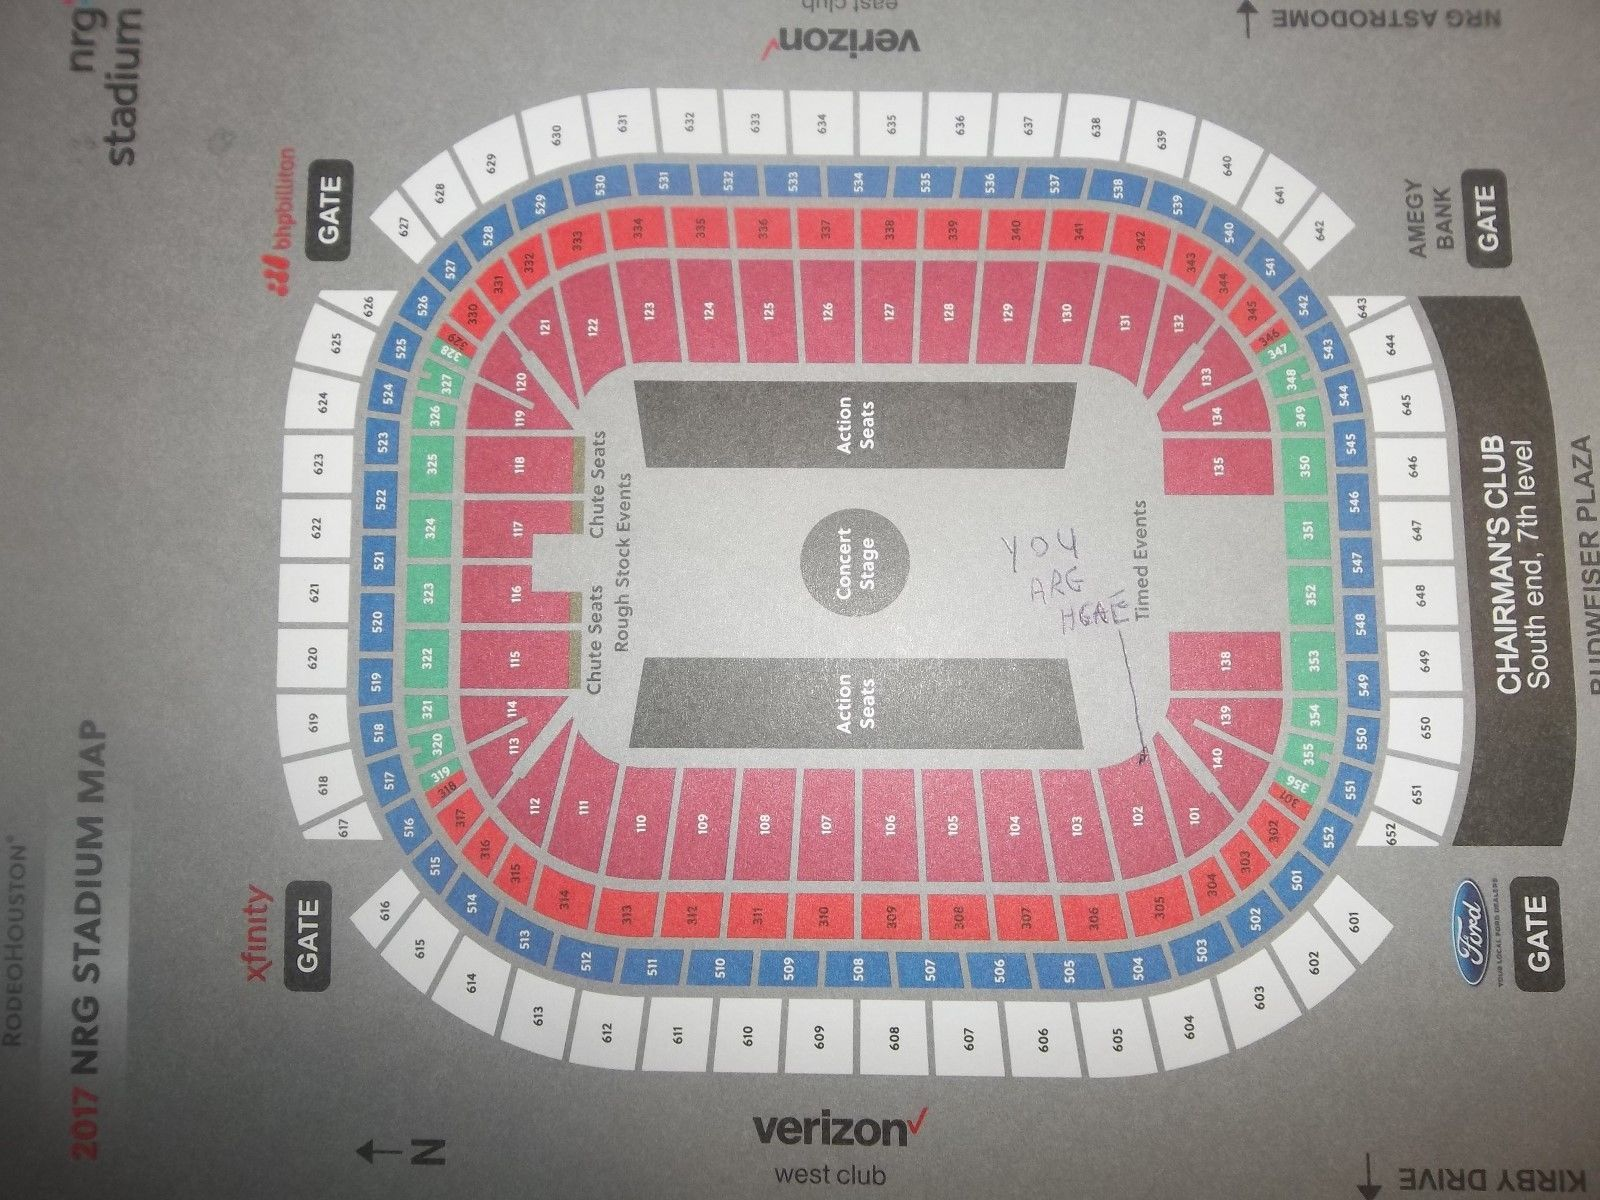 Tickets 4 Tickets Houston Rode Florida Georgia Line 20th Sec 102 Row C 3 Rows From Floor Tickets Houston Rodeo Florida Georgia Line Old Dominion